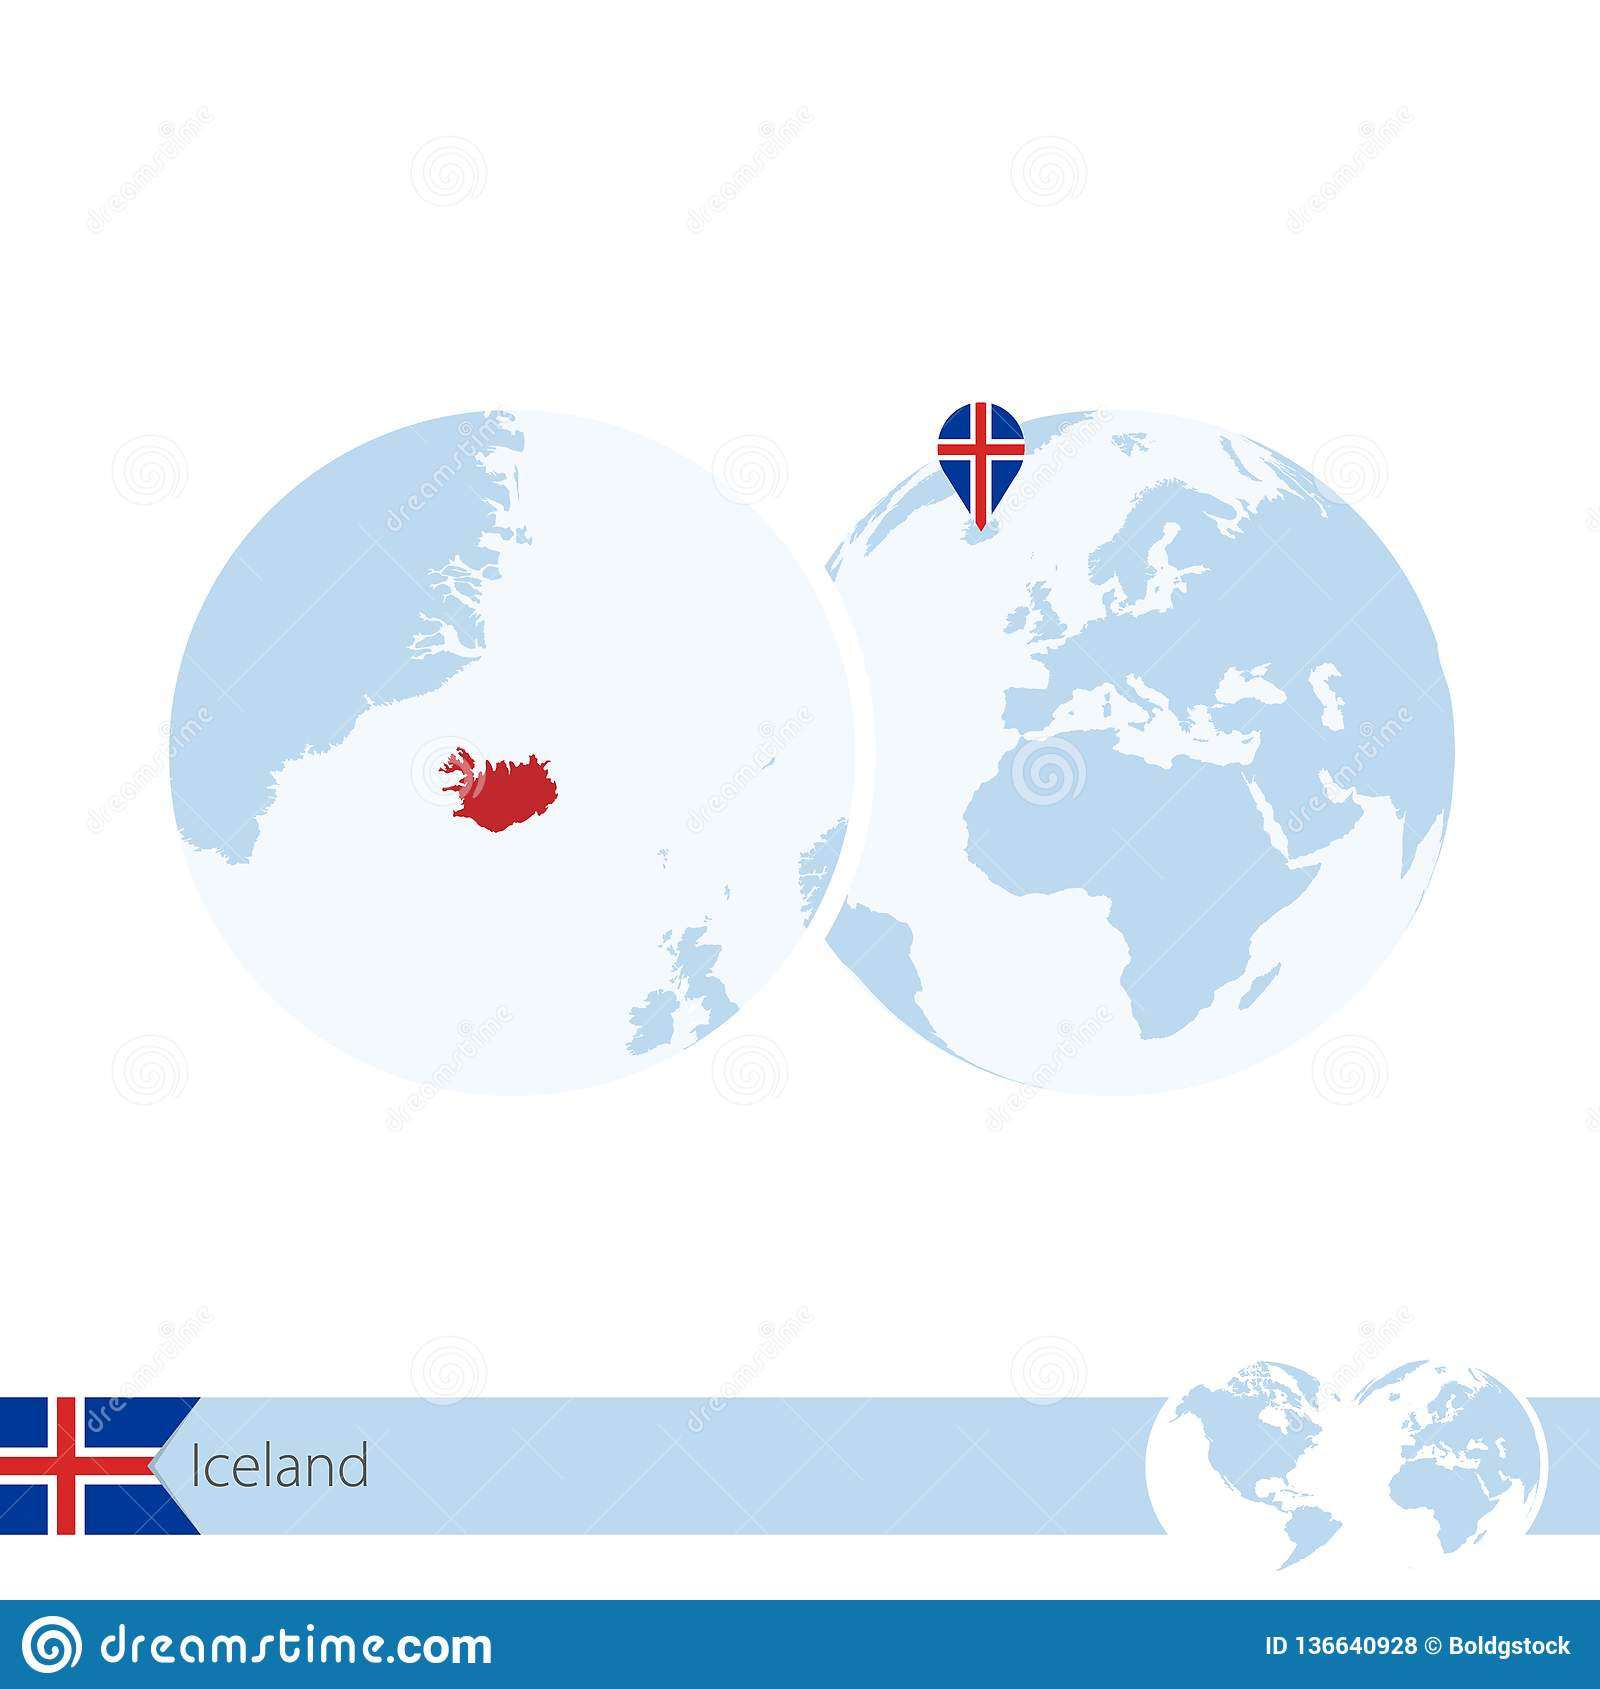 Iceland On World Globe With Flag And Regional Map Of Iceland Stock ...